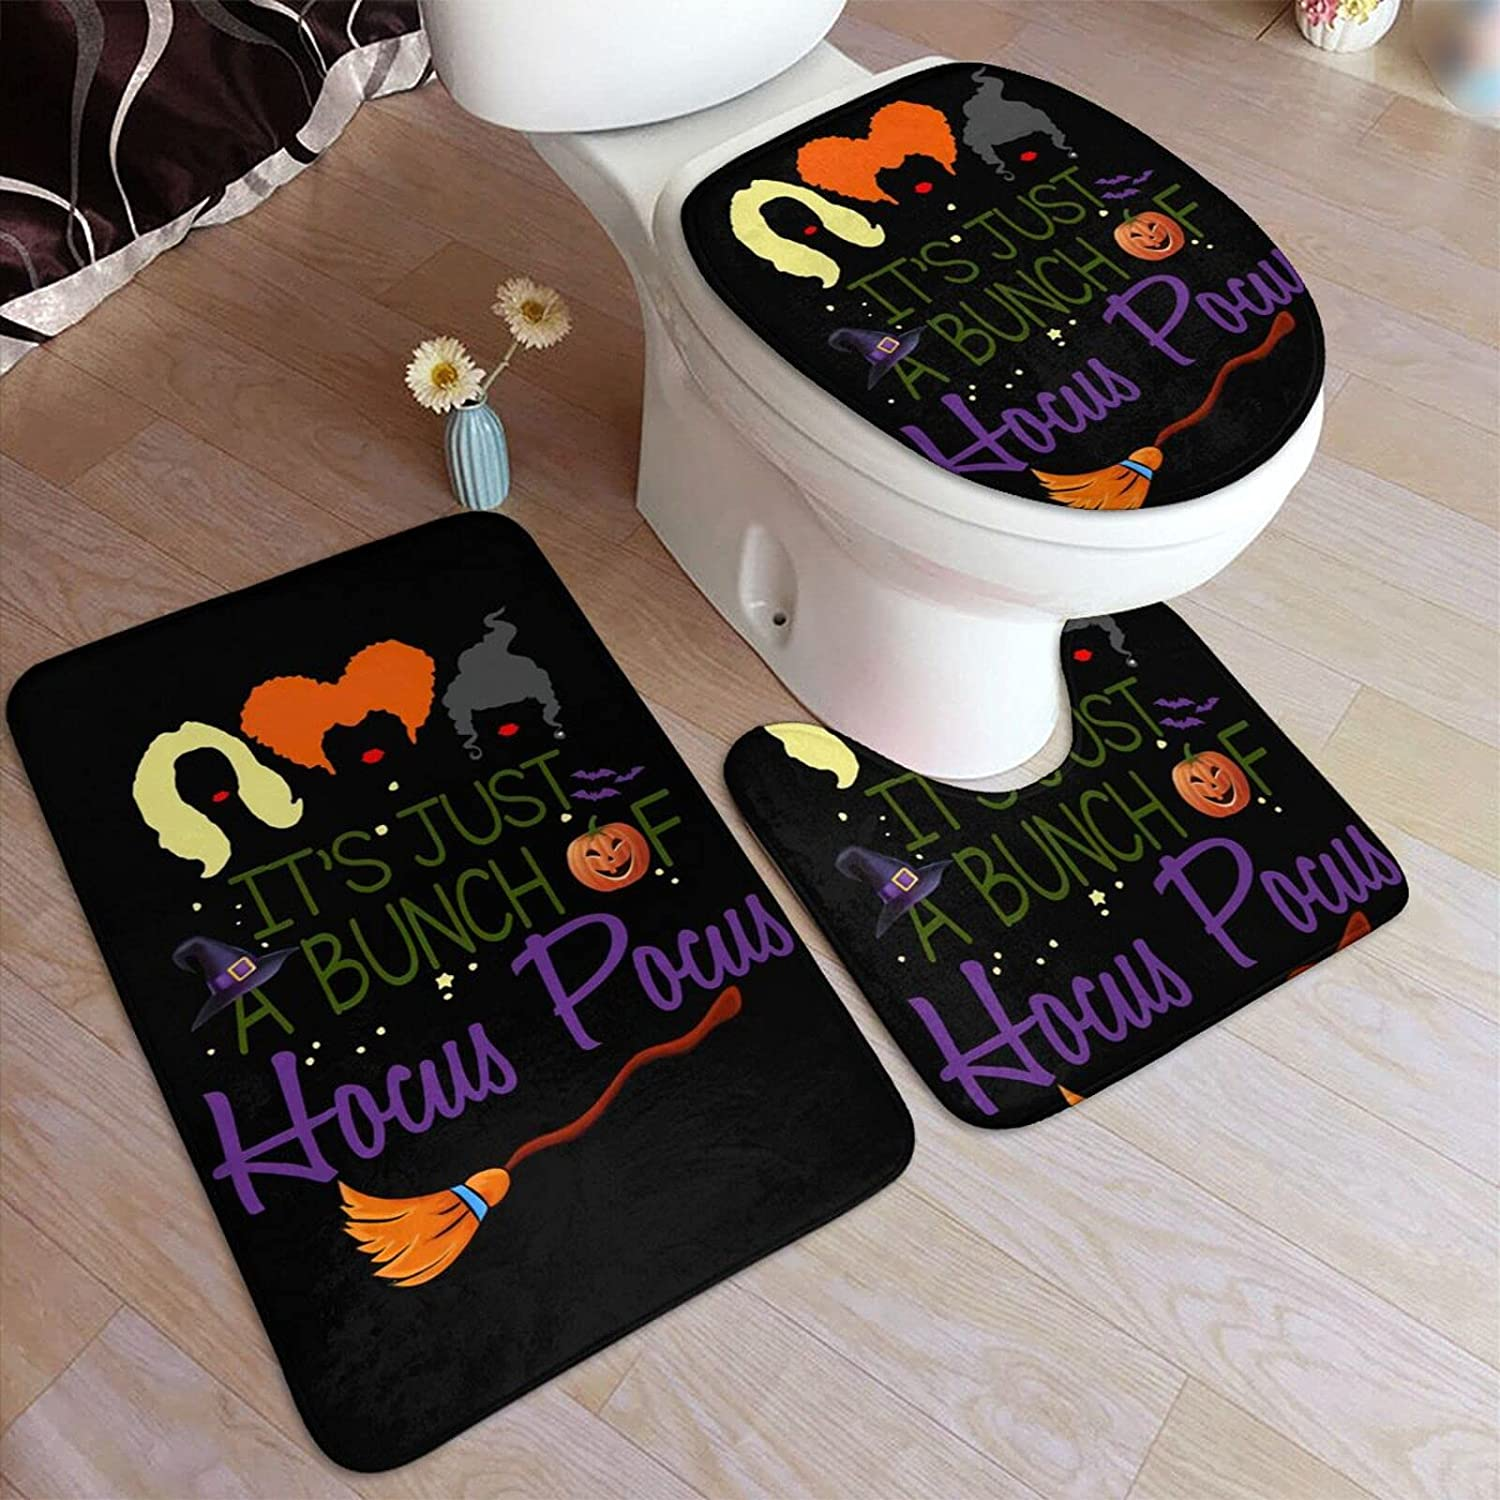 Kpopbaby It's Max 66% OFF Just A Bunch of Rug Mats Pocus Bathroom Large discharge sale Hocus Set